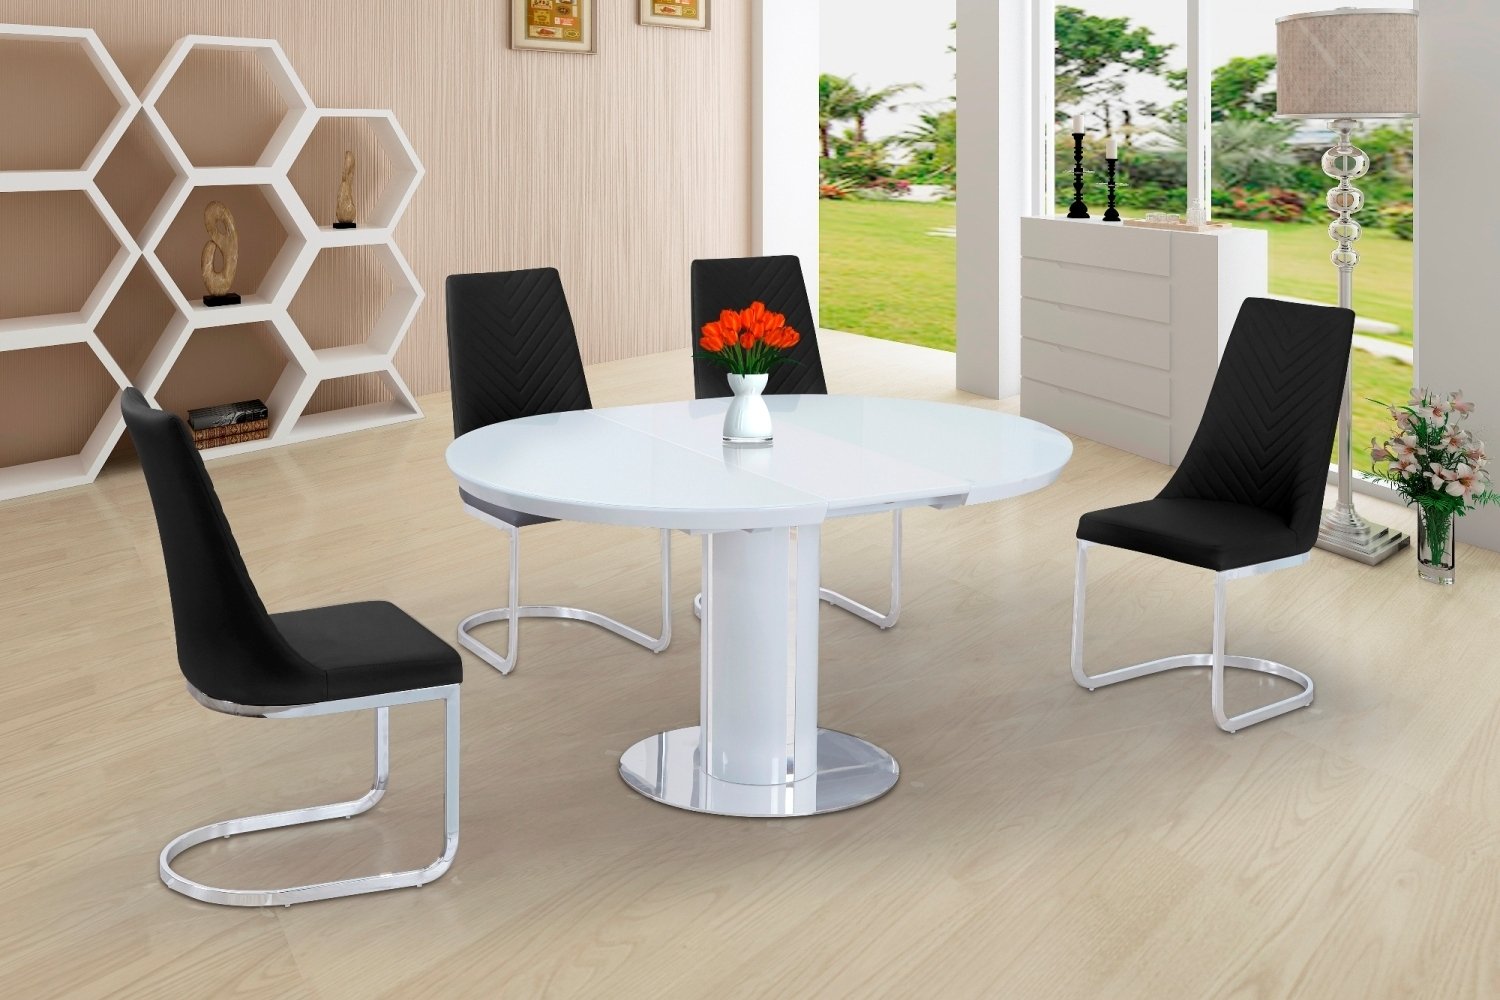 9eaffdf7c2335 Details about Round White Glass High Gloss Dining Table and 4 Black Chairs  Set